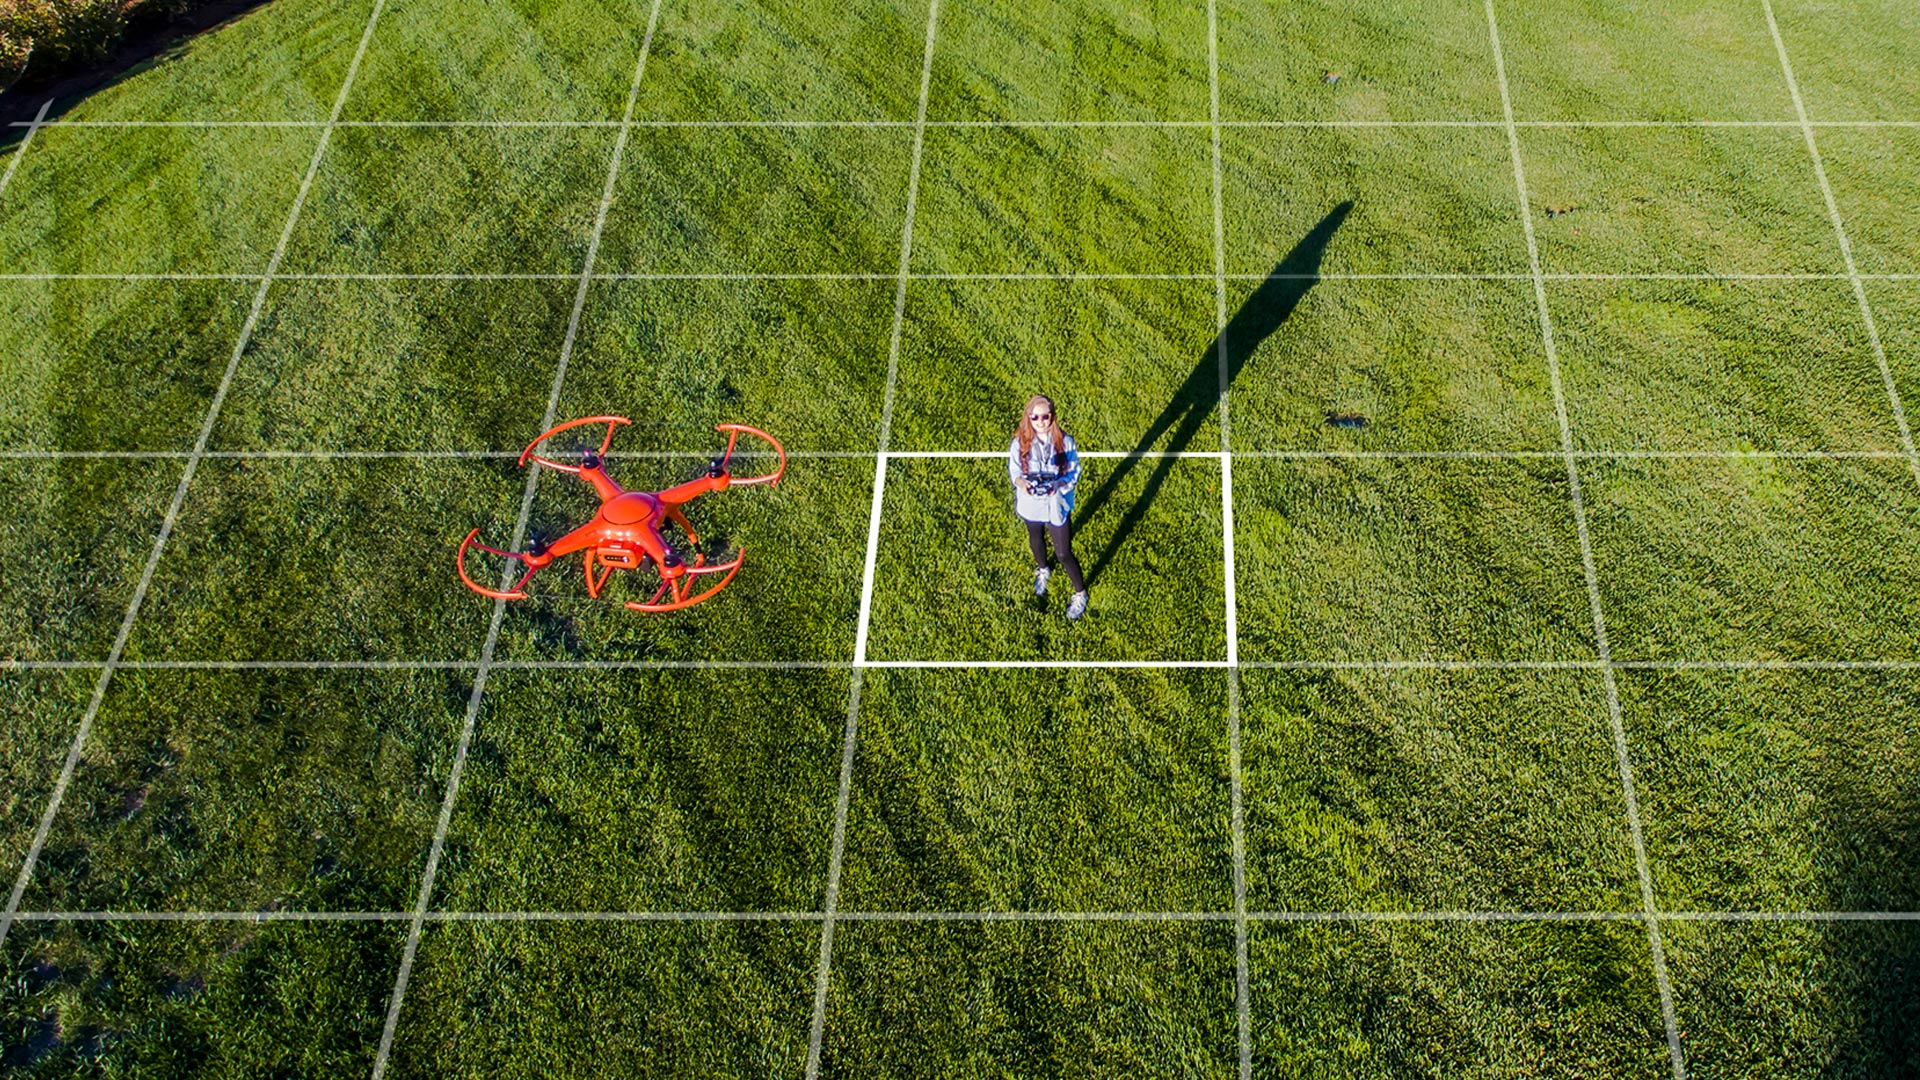 woman operating a drone in a field